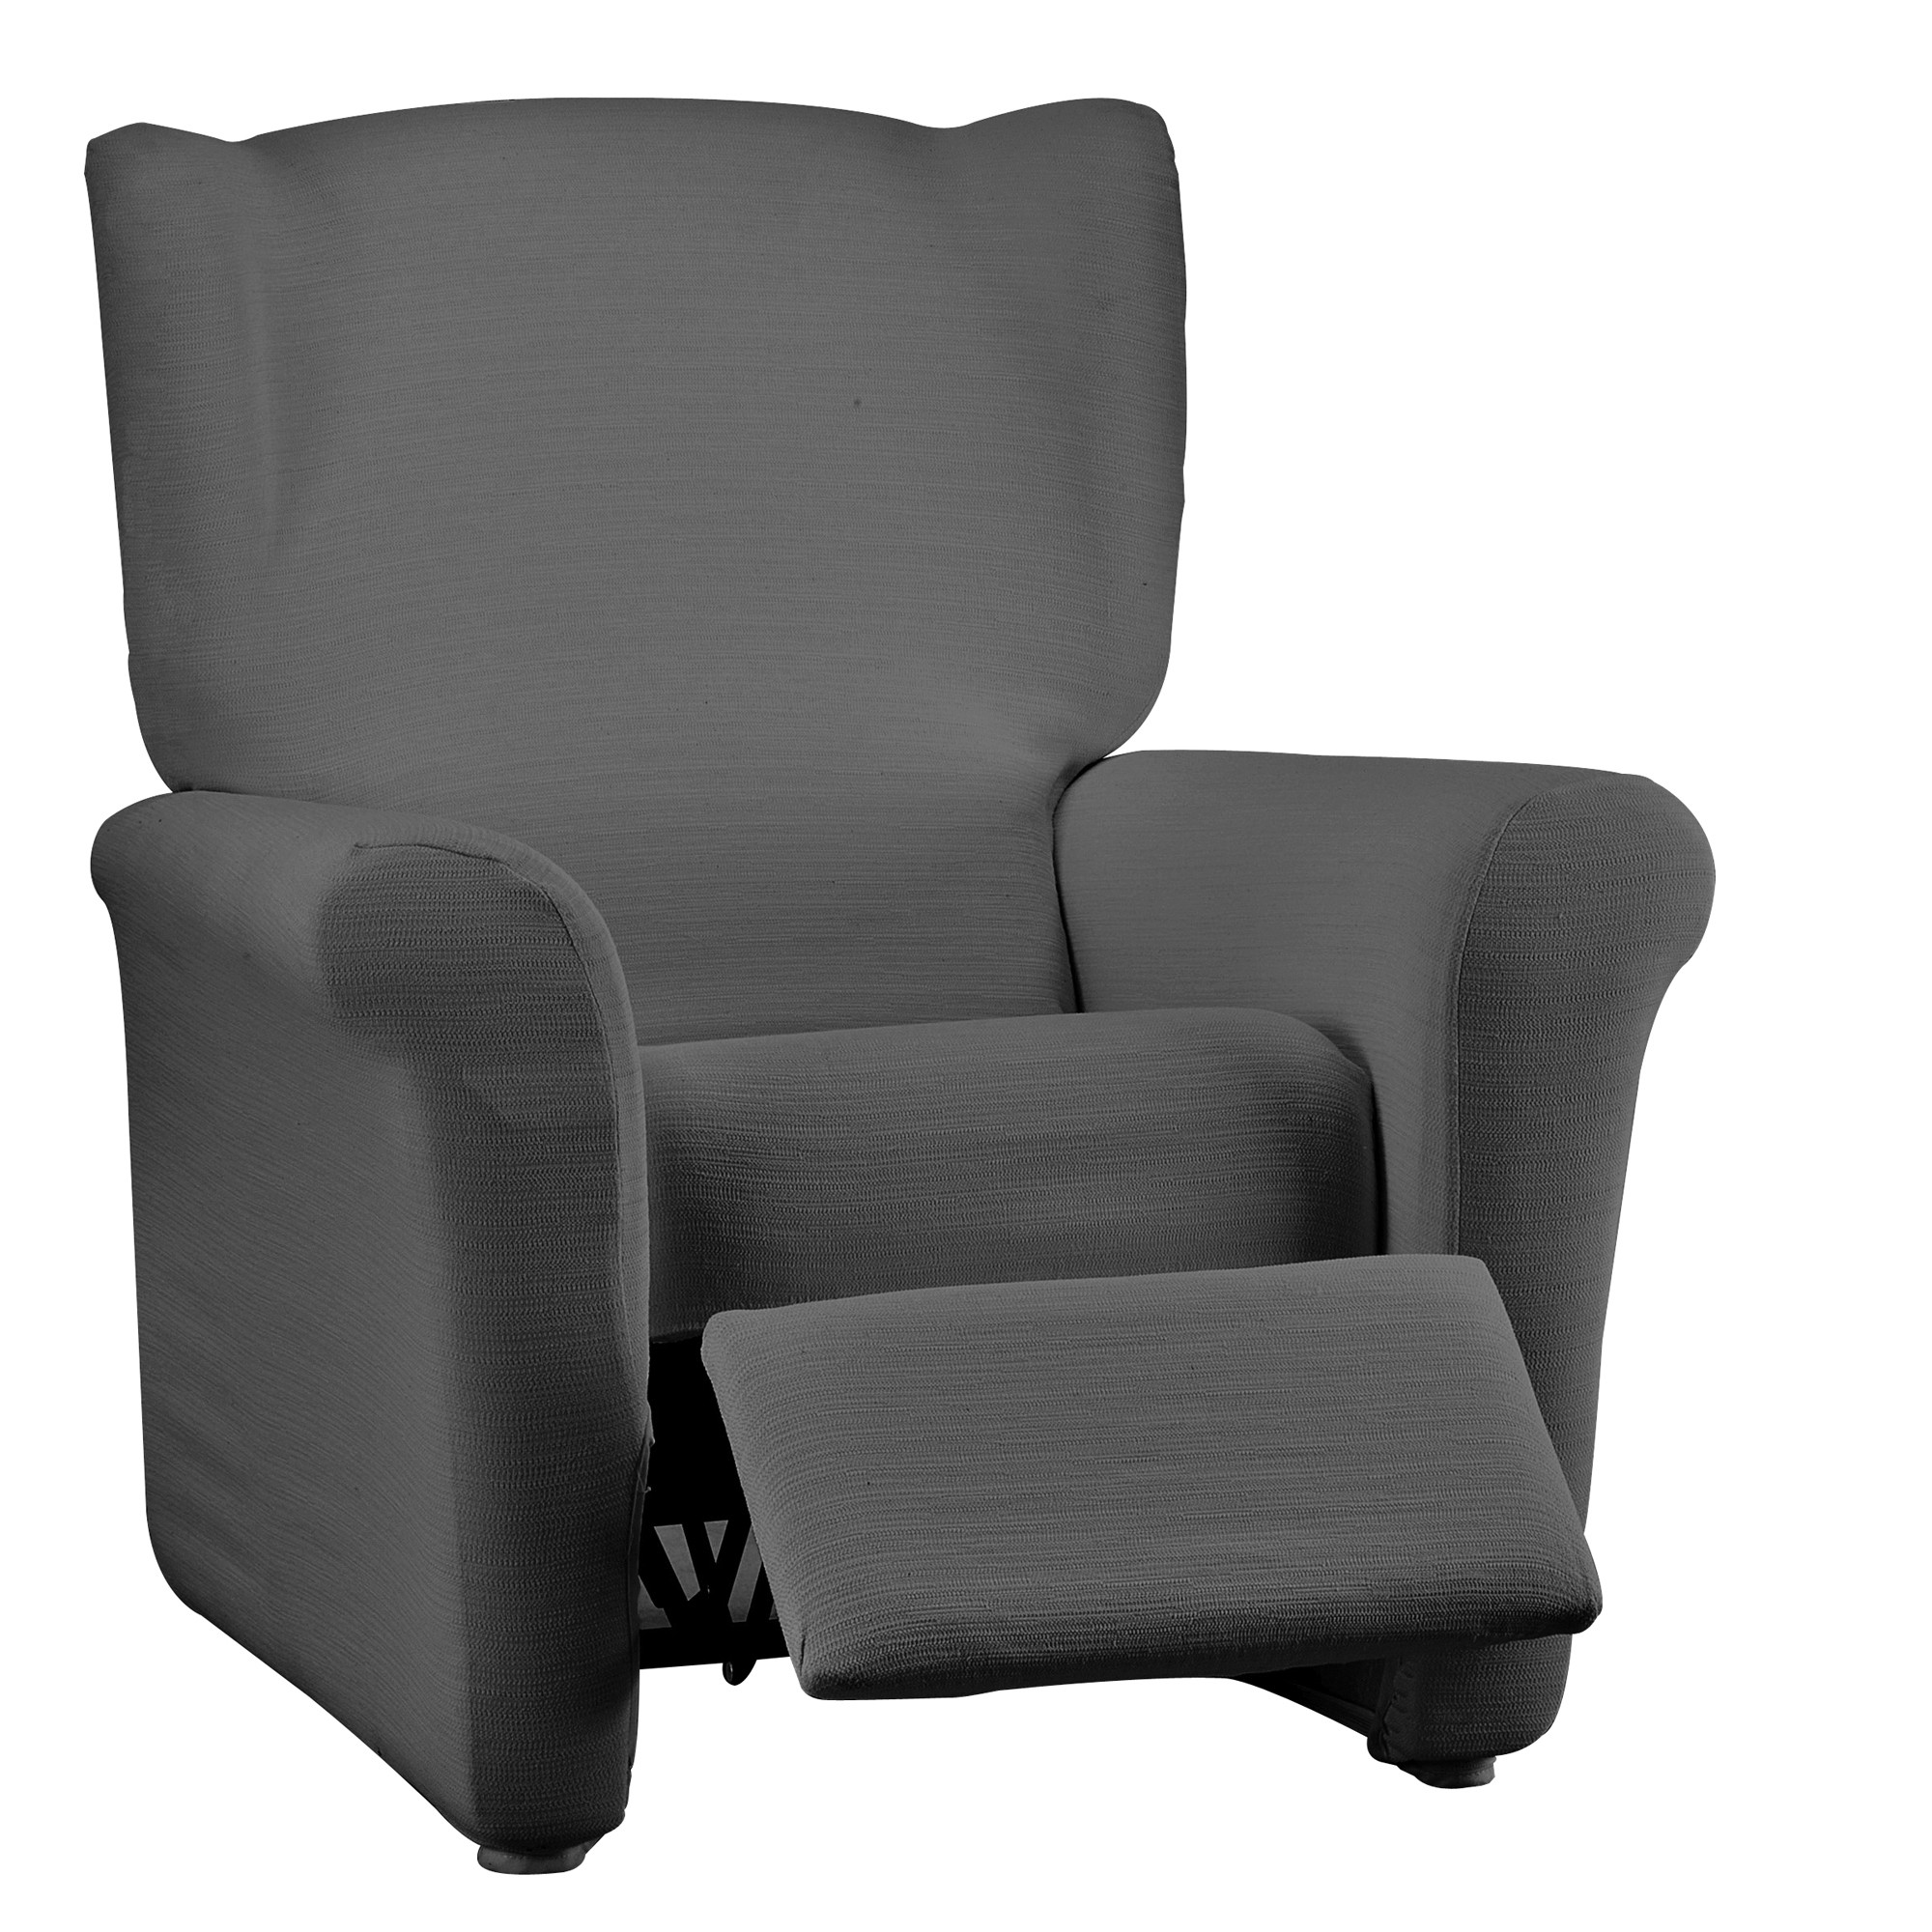 Housse extensible fauteuil relaxation blancheporte - Housse de fauteuil extensible ...